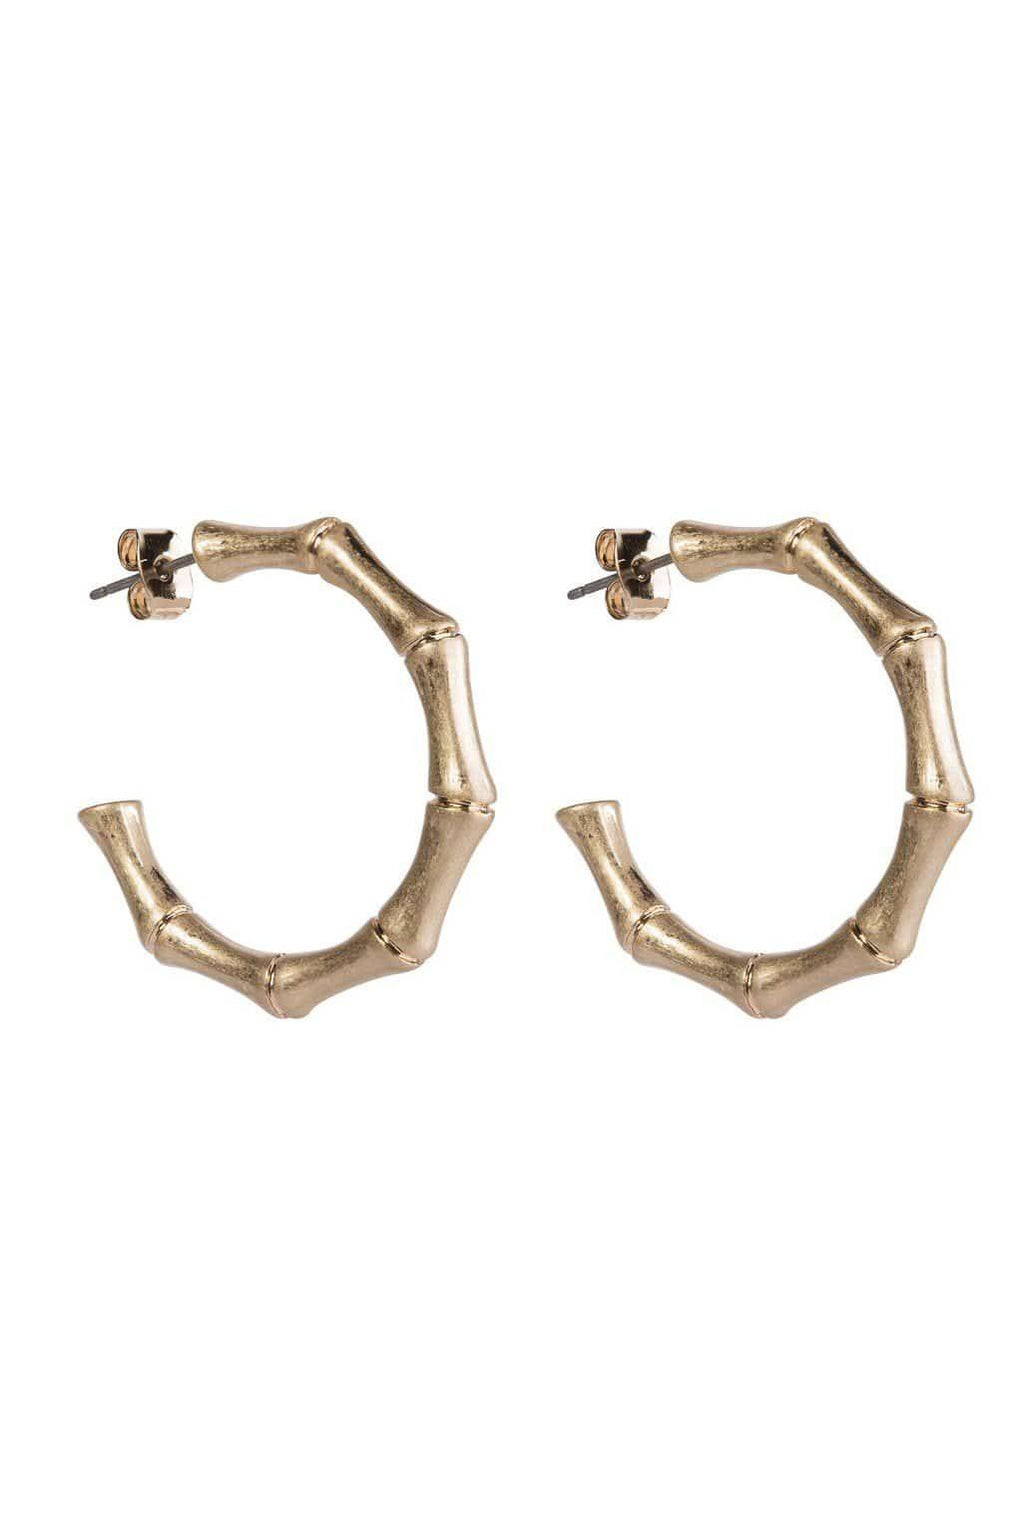 FOUR CORNERS Luxor Gold Earrings - Four Corners - [product type] - Magpie Style